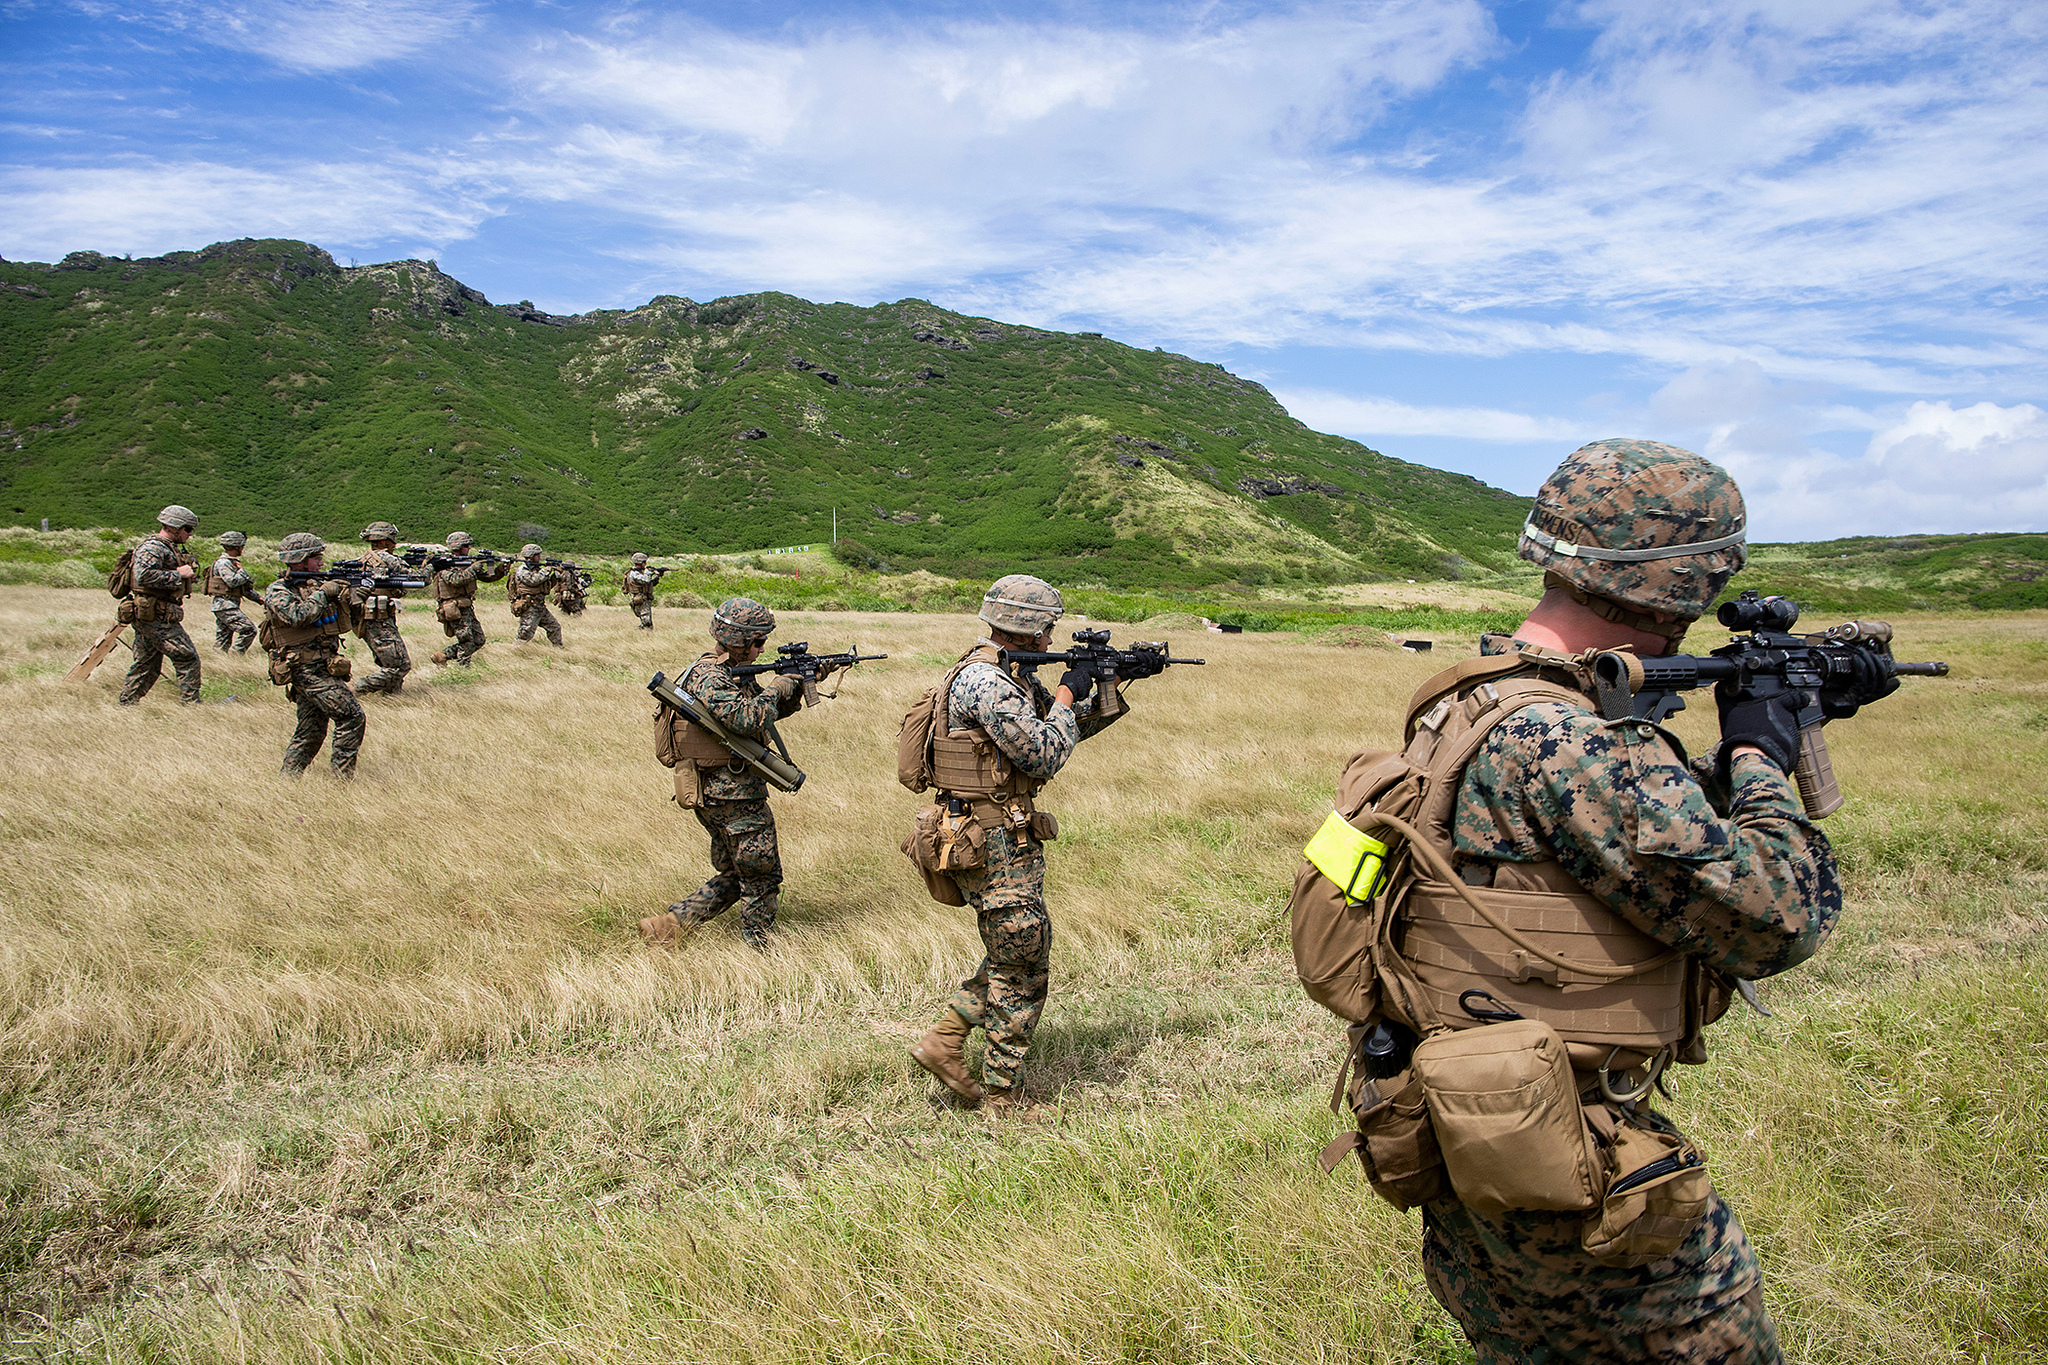 Marines advance toward targets on March 6, 2019, during a squad supported attack at the Kaneohe Bay Range Training Facility, Marine Corps Base Hawaii. (Sgt. Jesus Sepulveda Torres/Marine Corps)